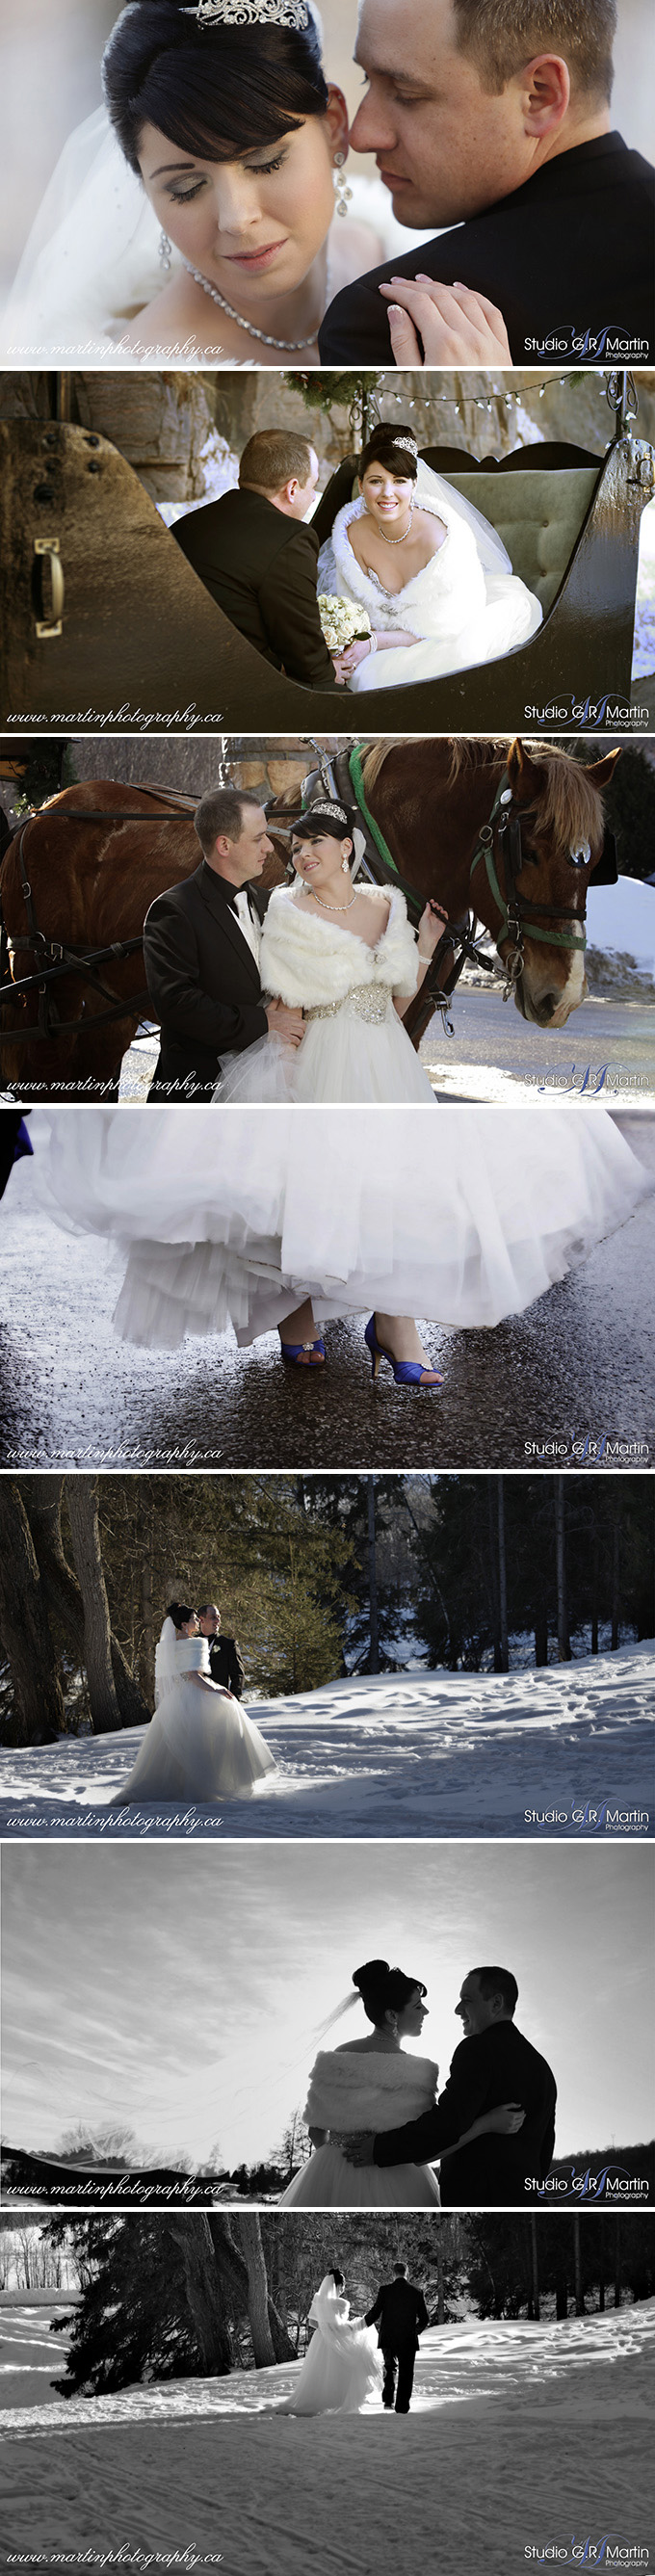 Muskoka Winter Wedding Ottawa Wedding Photographers Deerhurst Resort